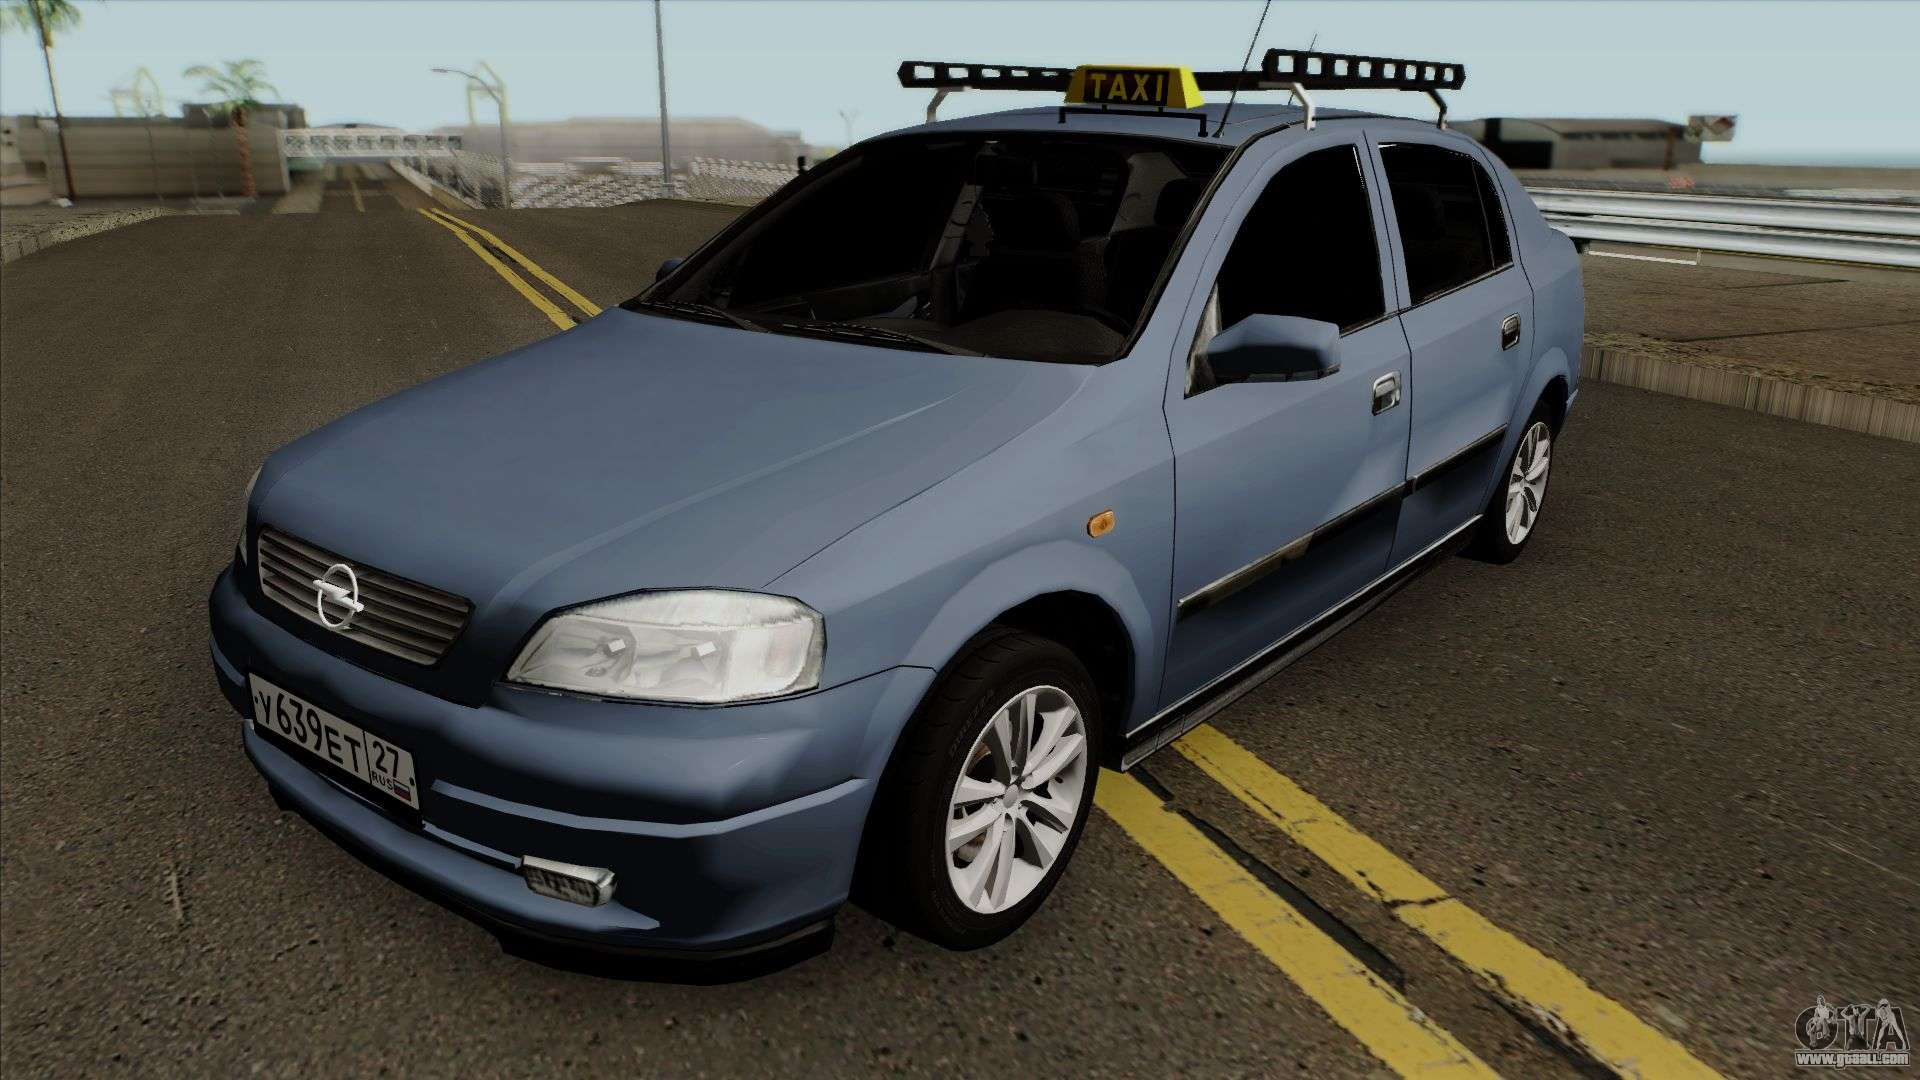 opel astra g 1999 taxi for gta san andreas. Black Bedroom Furniture Sets. Home Design Ideas